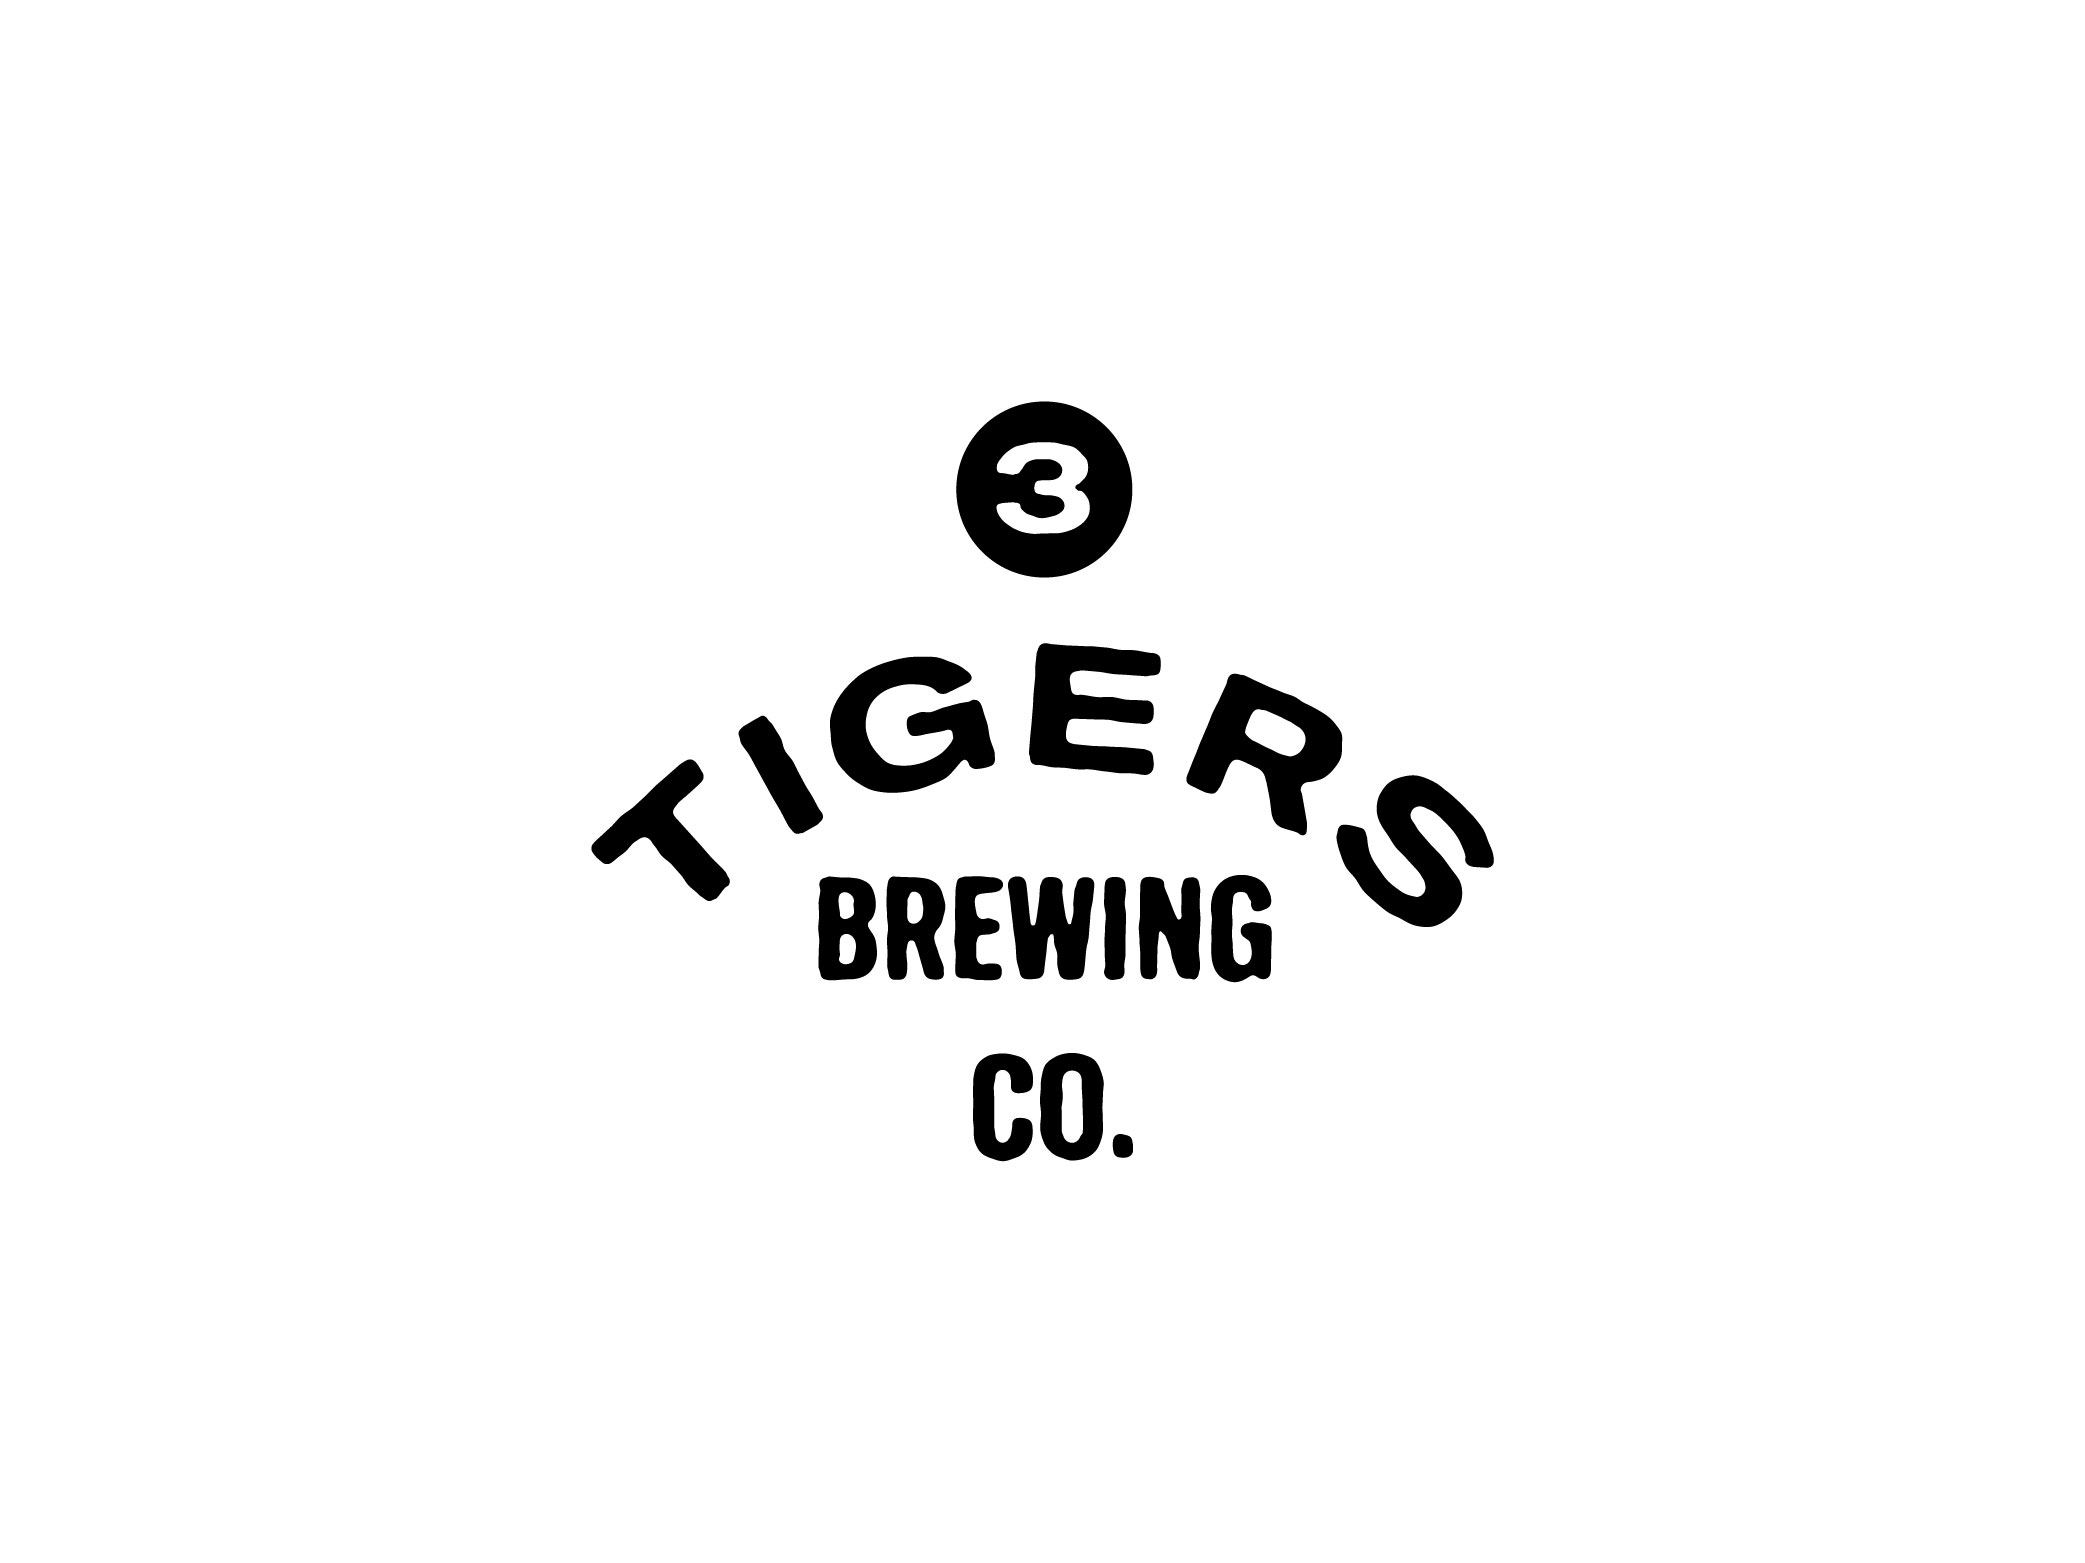 Studio Freight - Tigers Brewing Co Logo